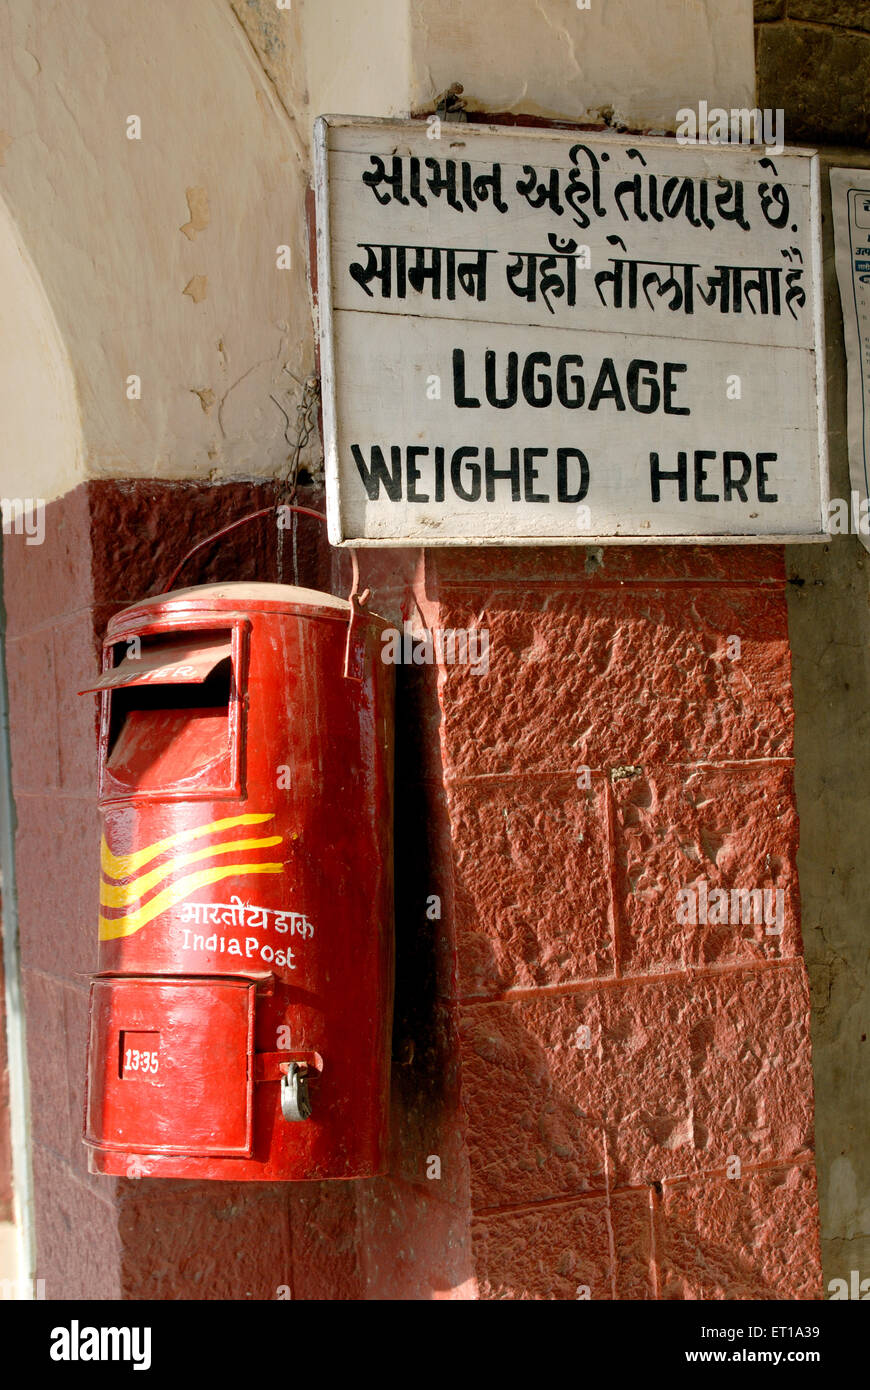 Red postbox at luggage weighed here board - Stock Image